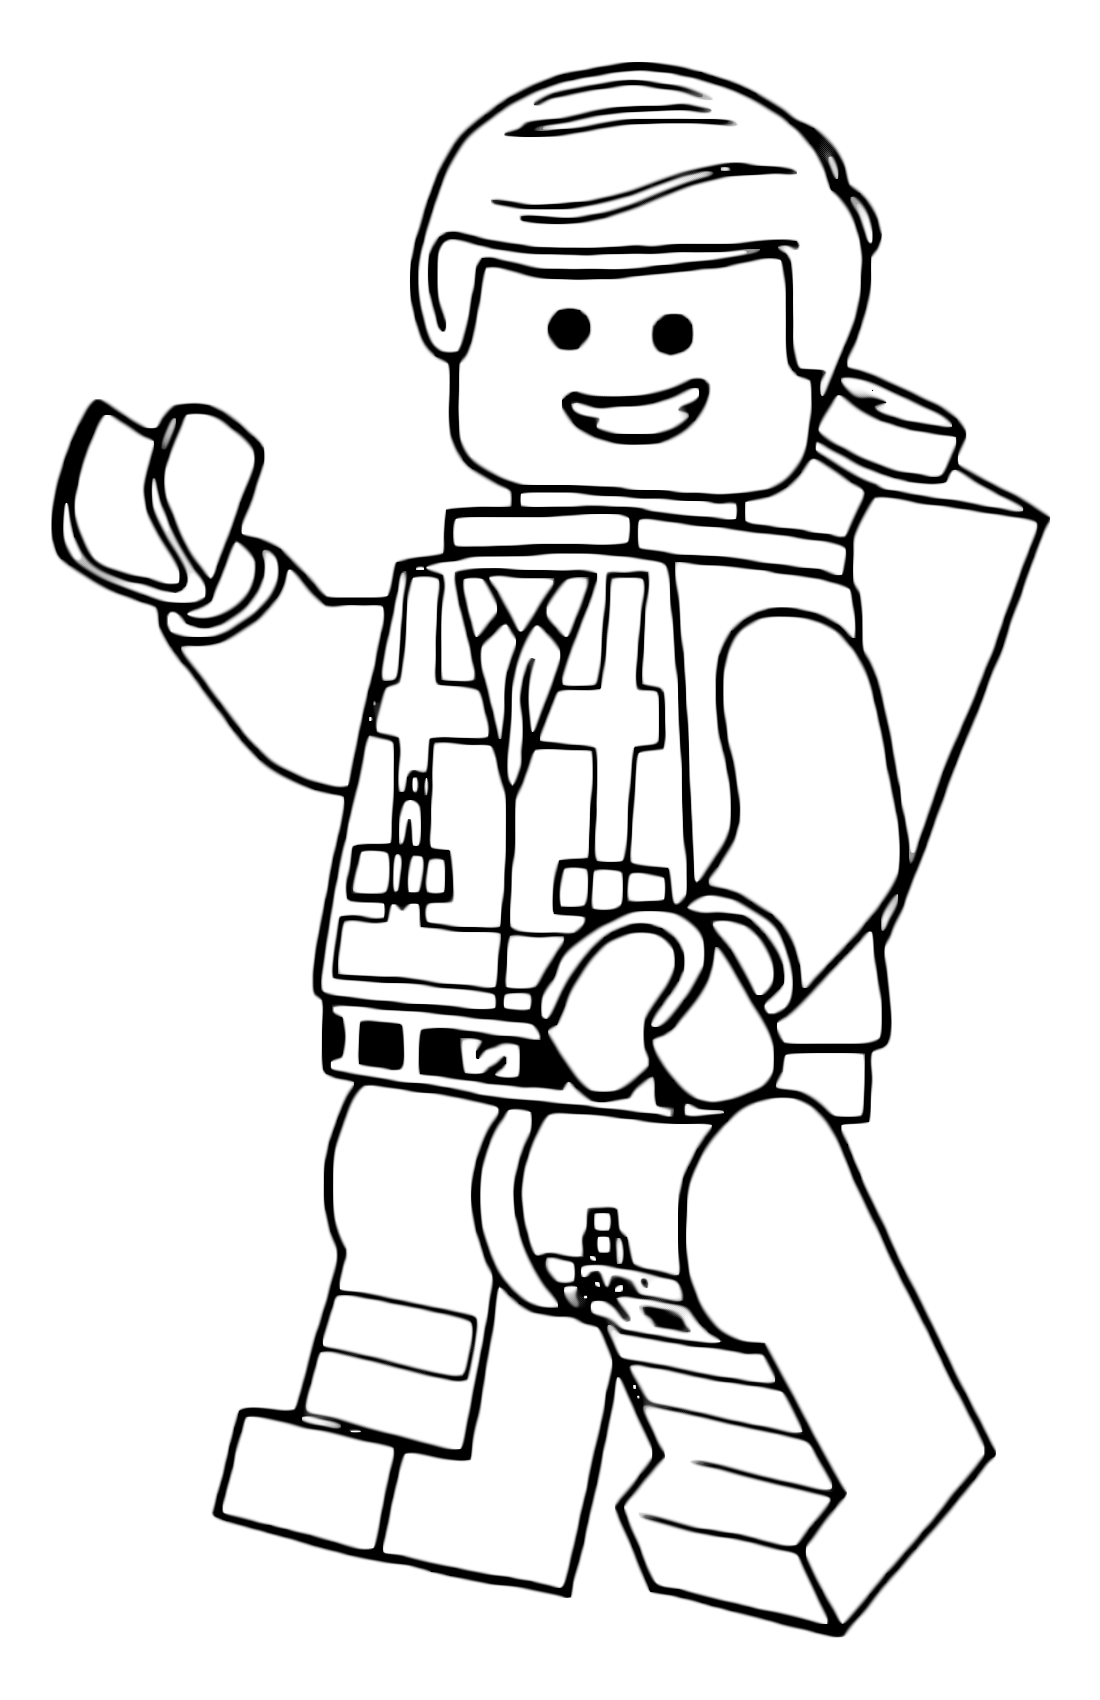 coloring pages of legos quotthe lego moviequot coloring pages of legos pages coloring